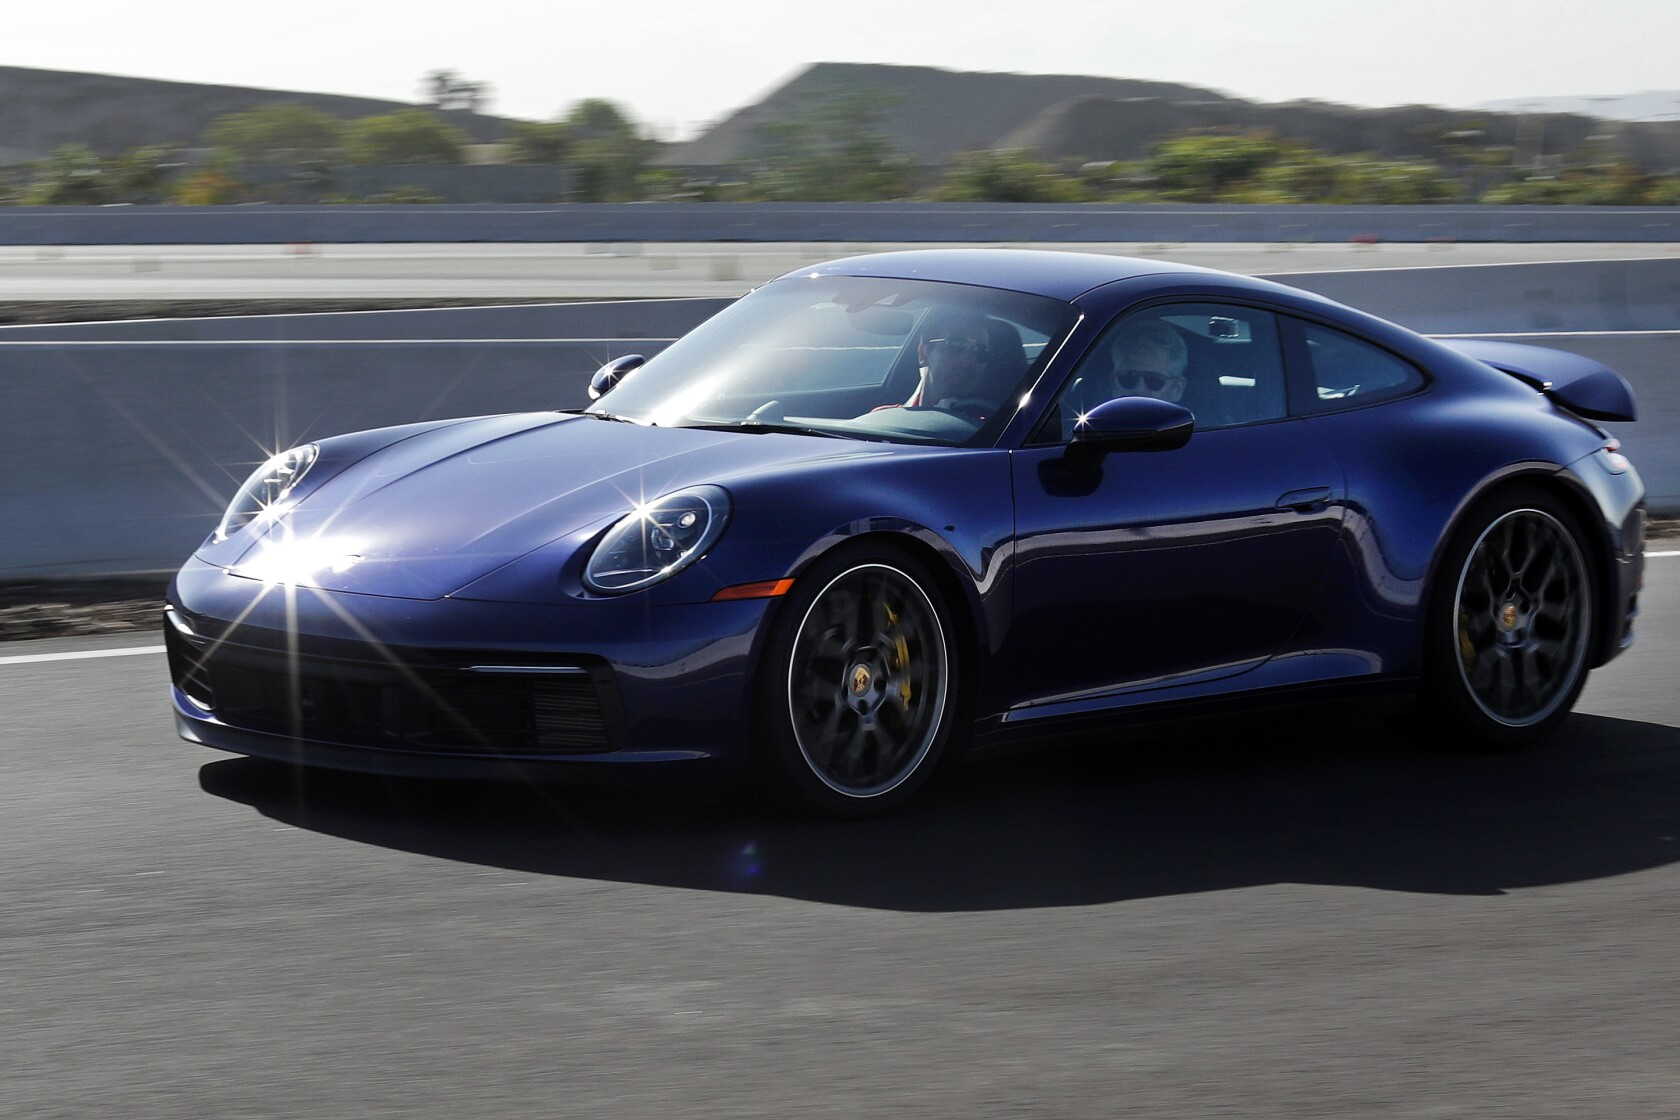 At 56 years old, Porsche's 2020 911 sports car is spry as ever